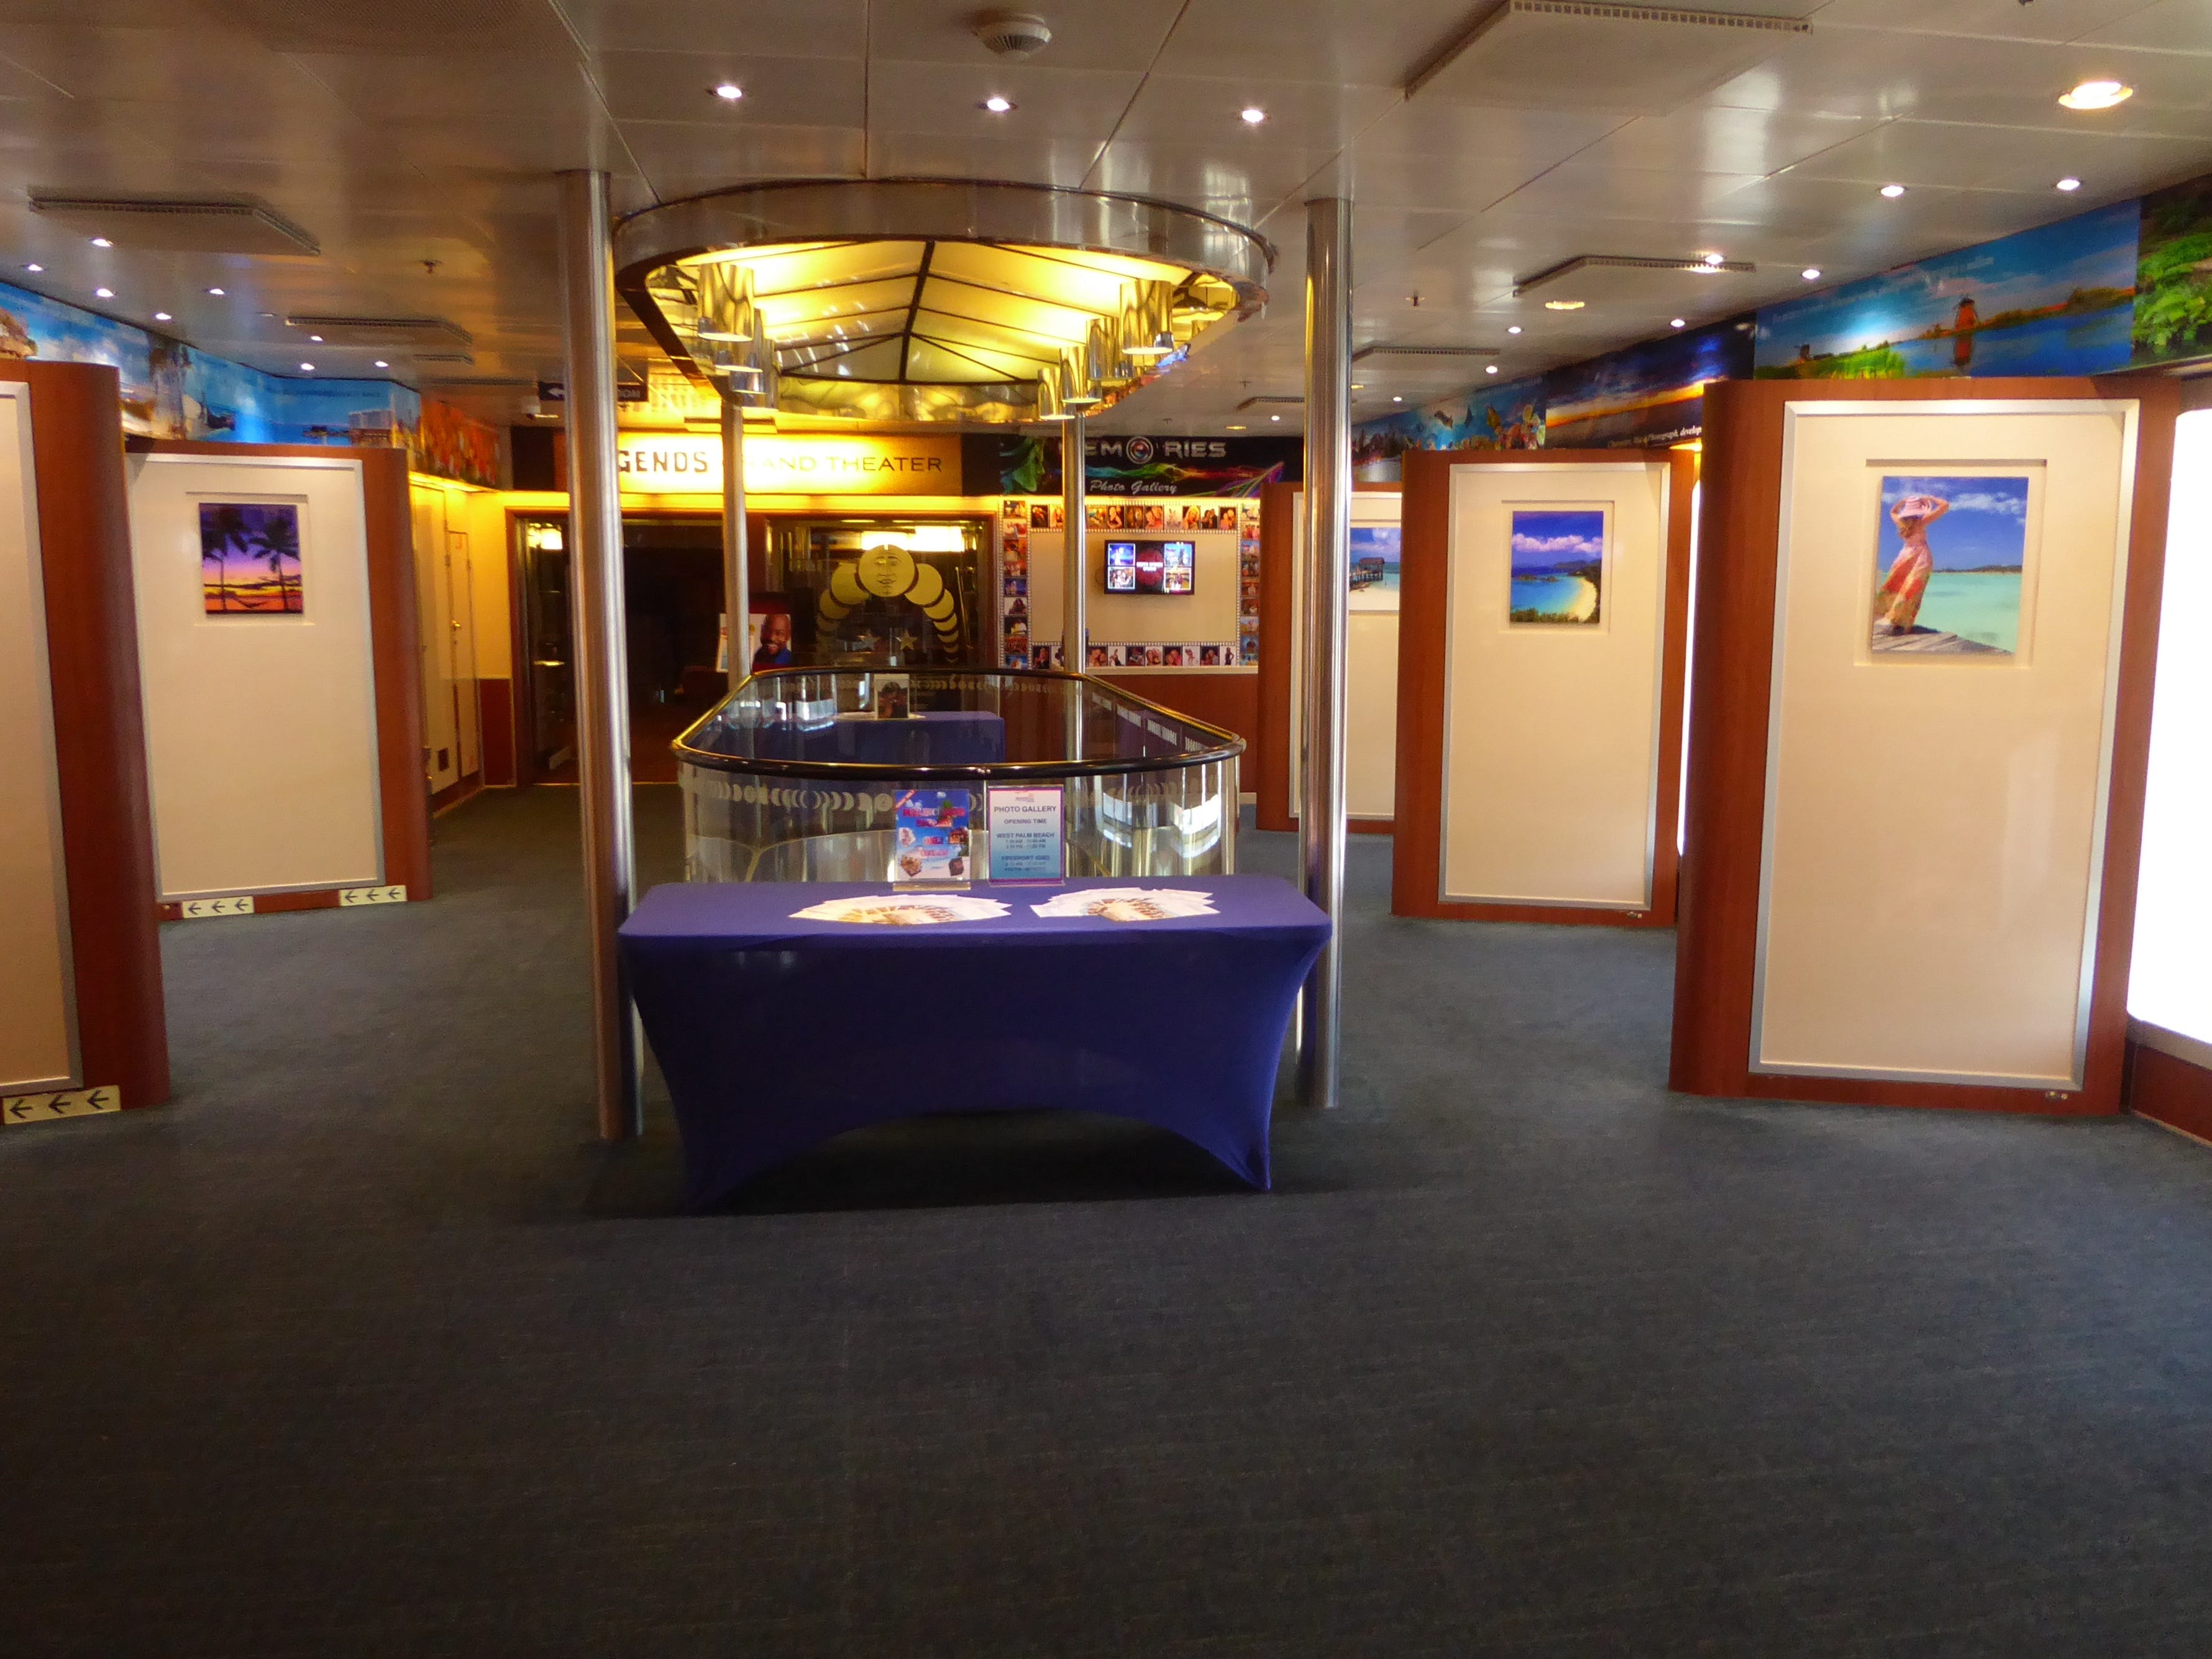 The Memories Photo Gallery is located at the starboard entrance to Legends on Paradise Deck.